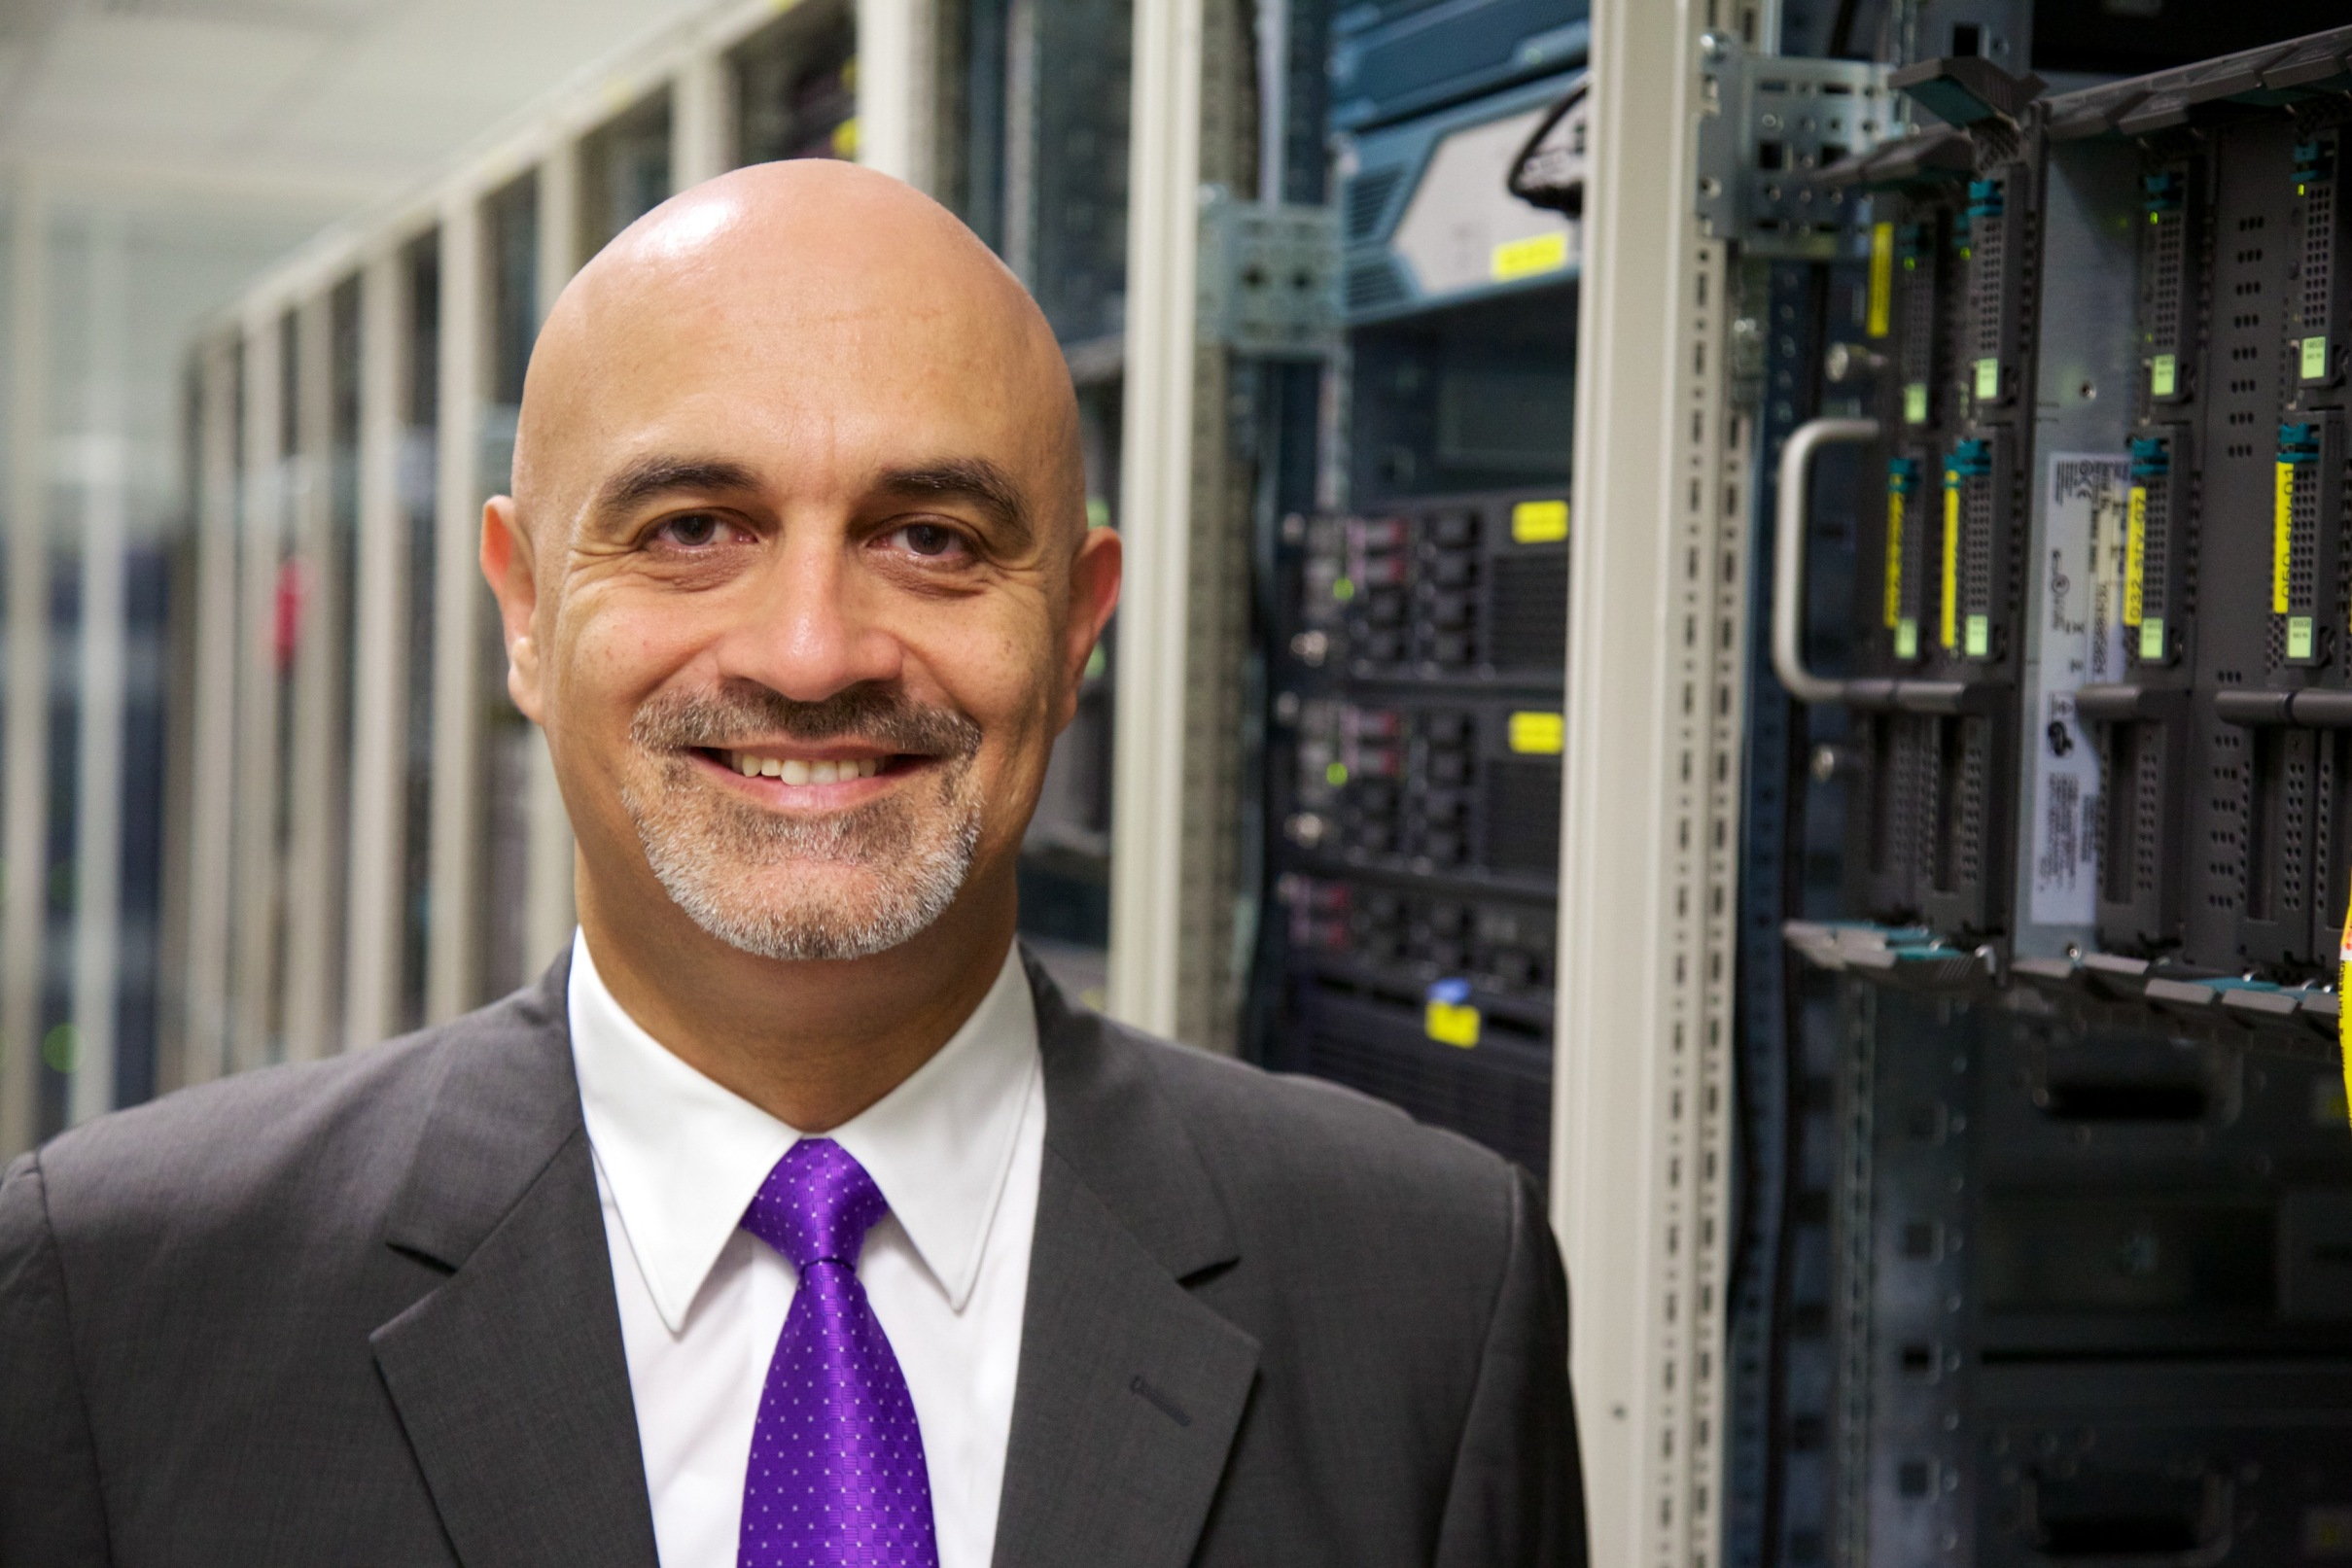 eHDF announces launch of cyber defense centre in UAE